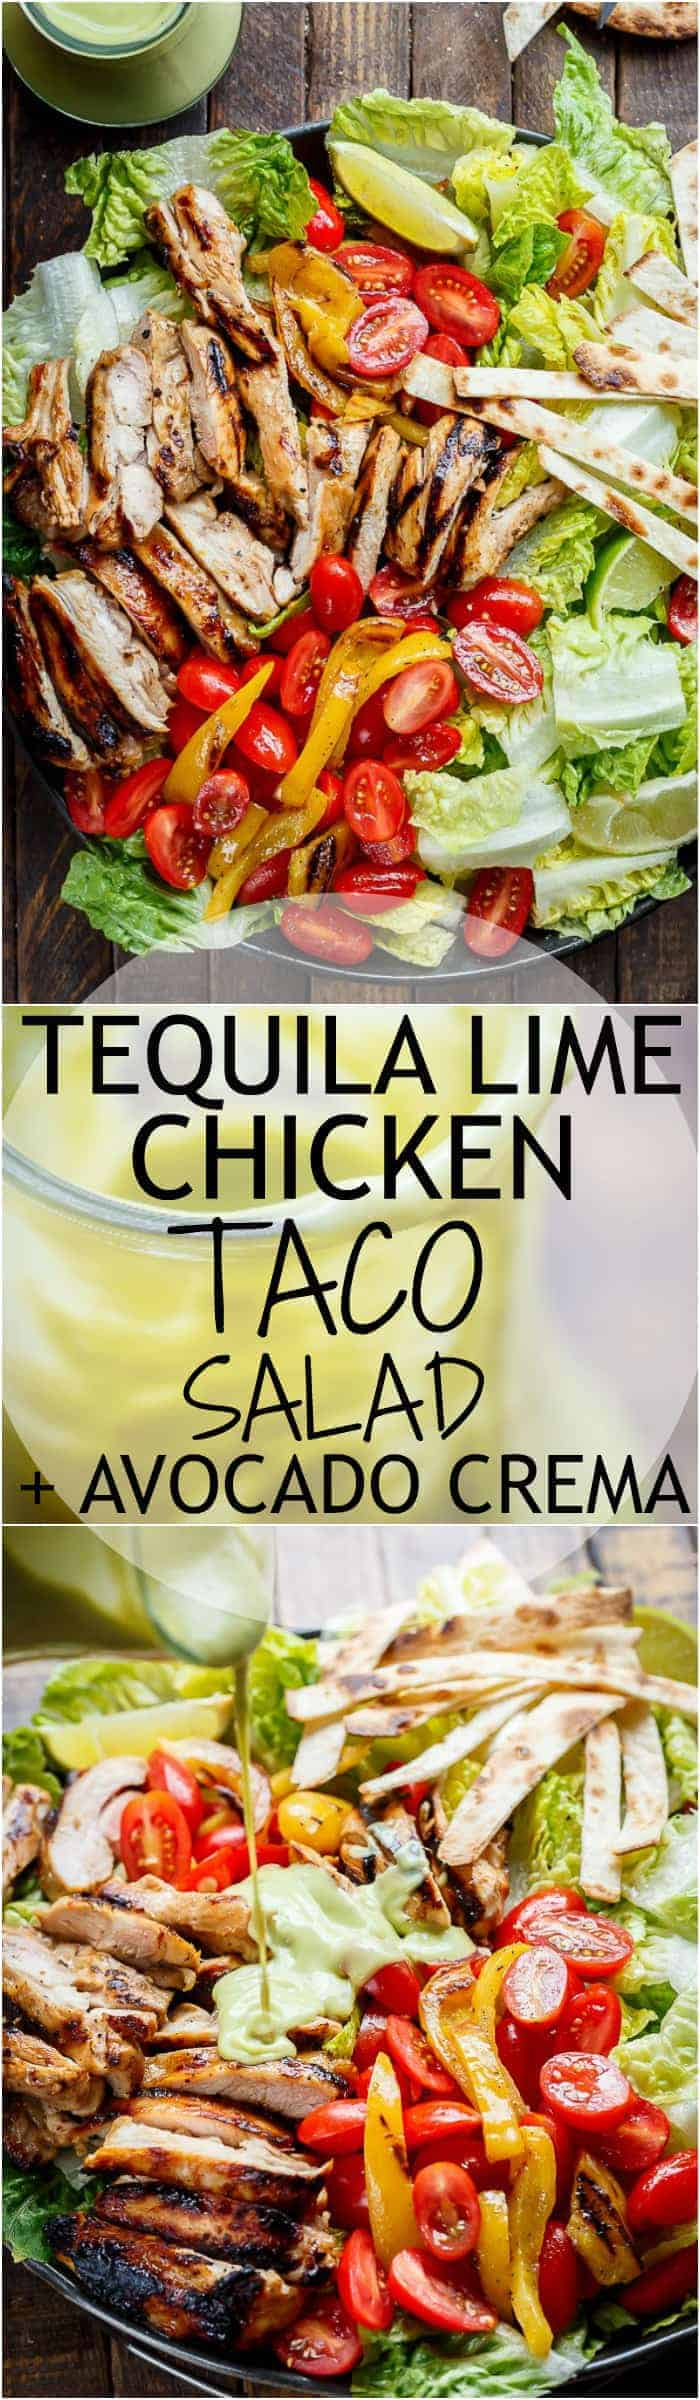 Tequila Lime Chicken Taco Salad with an Avocado Crema spiked with honey, lime and booze. Complete with tortilla strips, have a chicken taco in a salad!   http://cafedelites.com